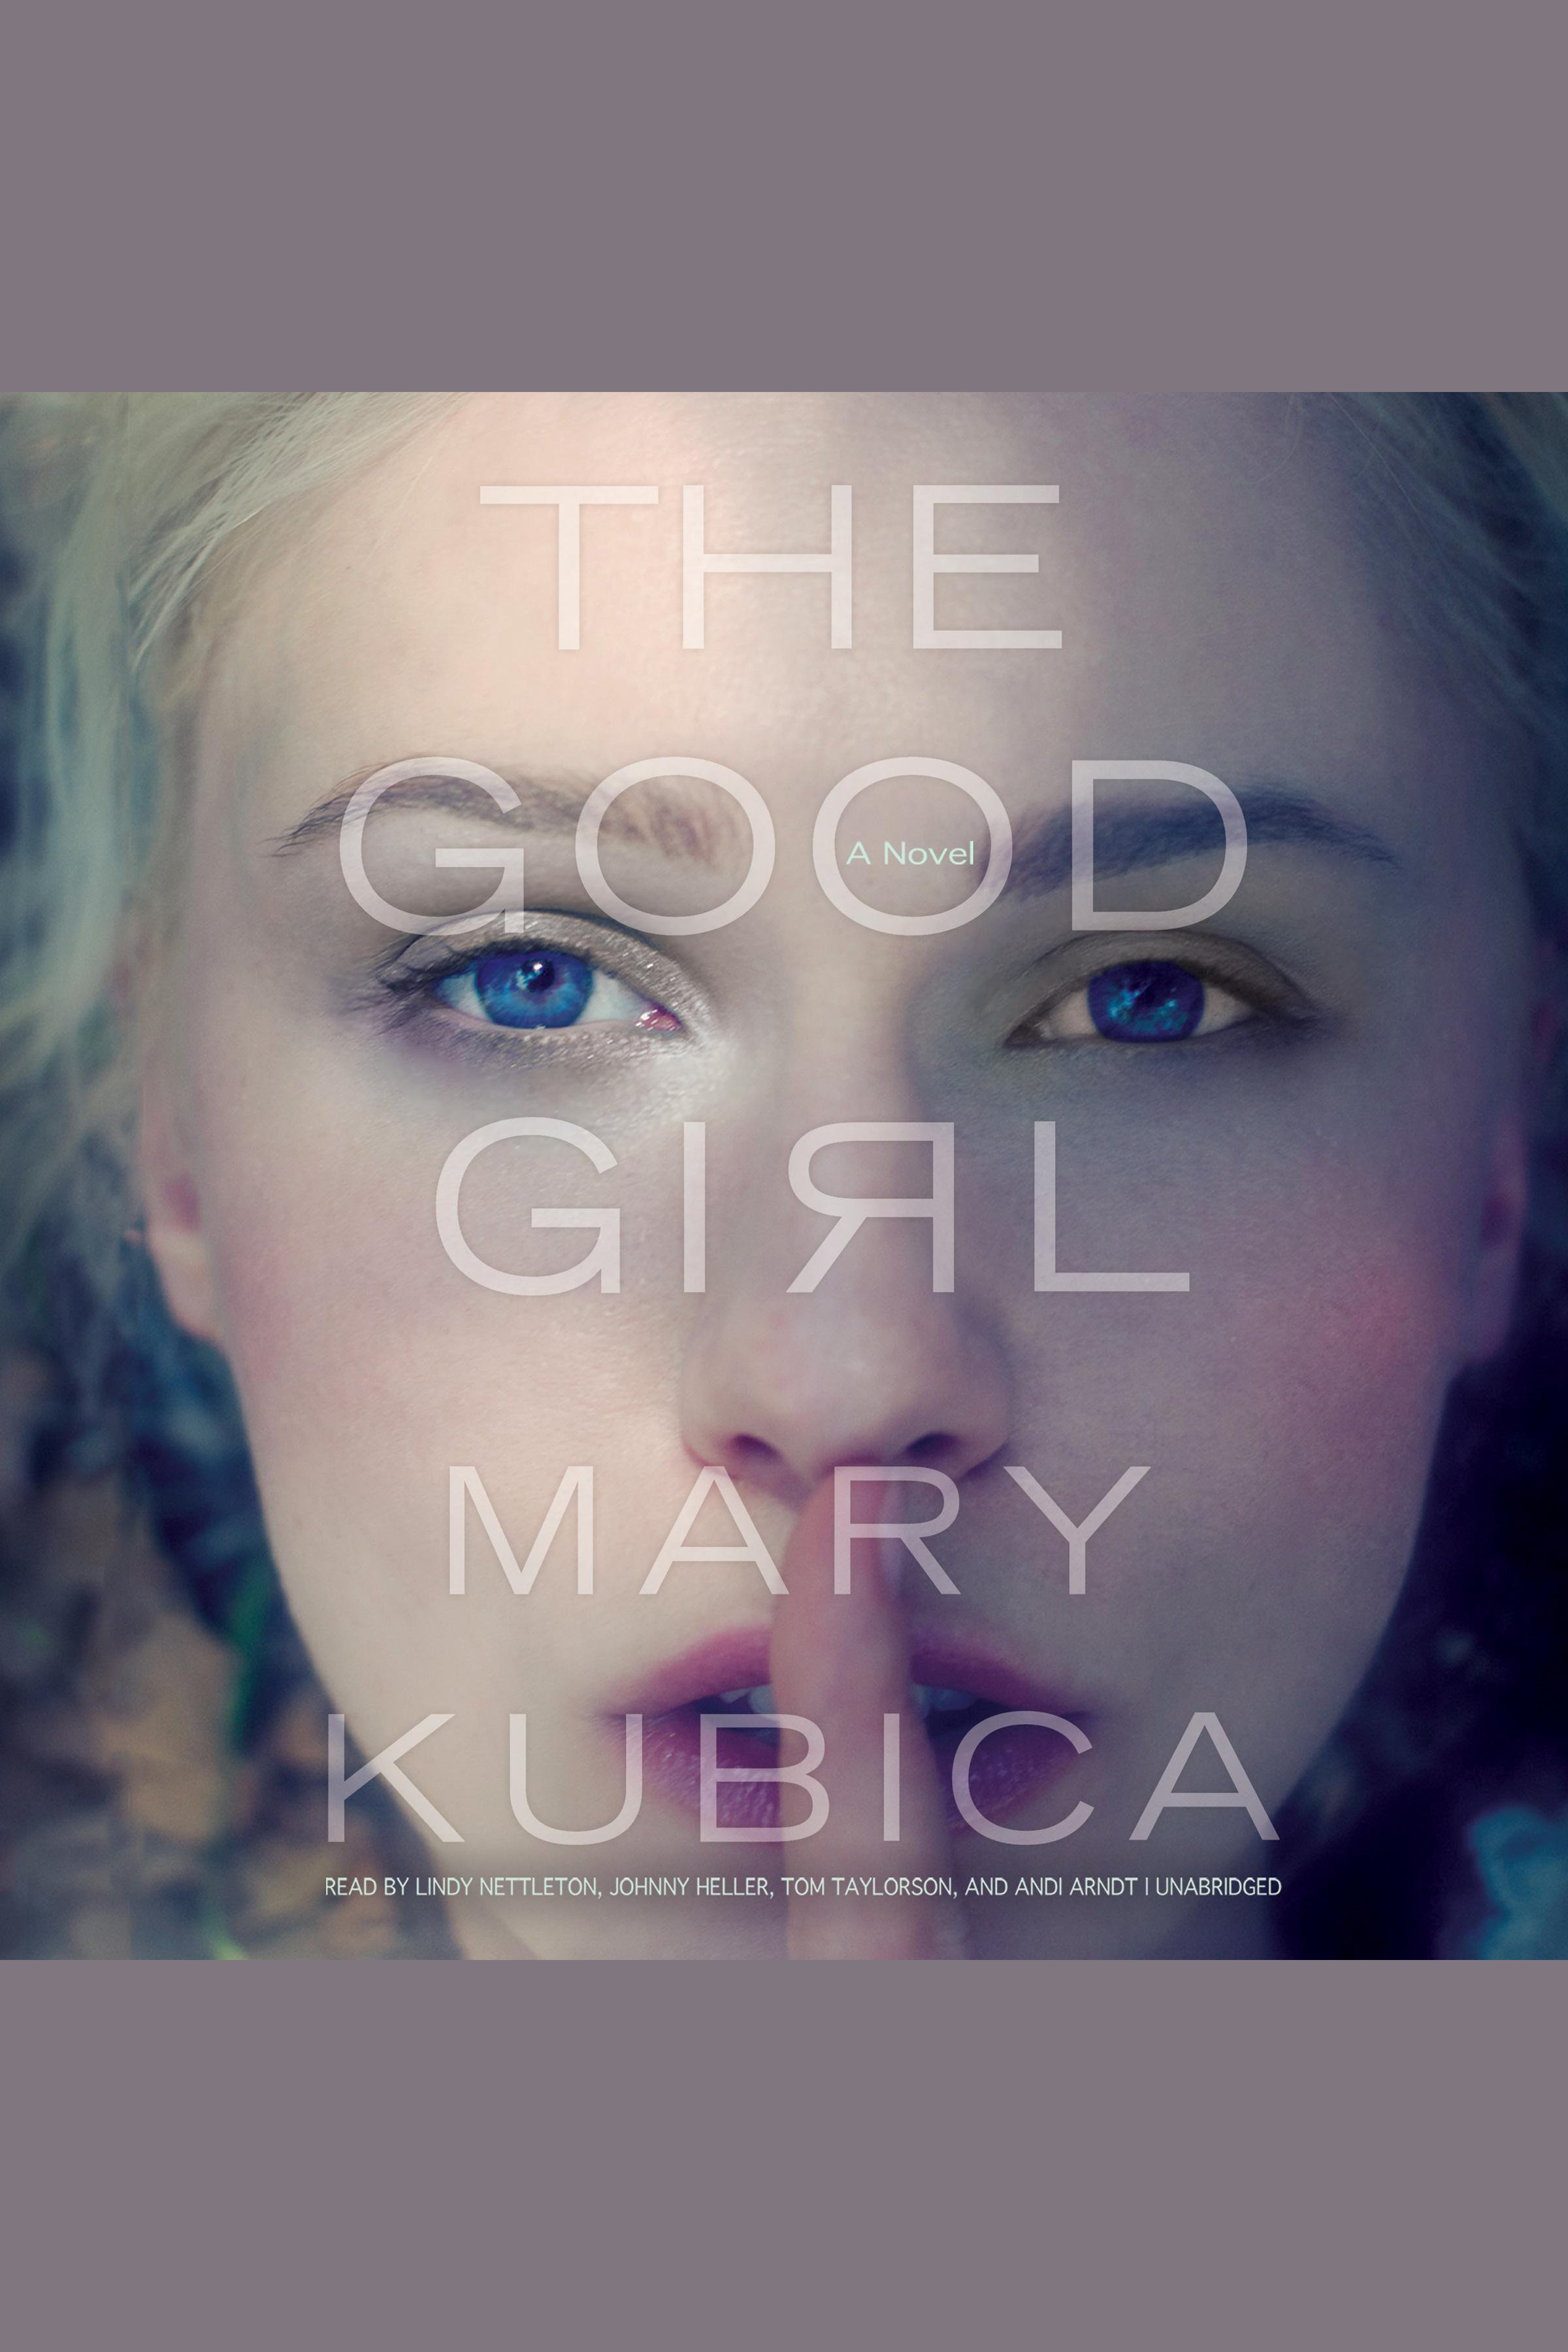 The good girl : cover image